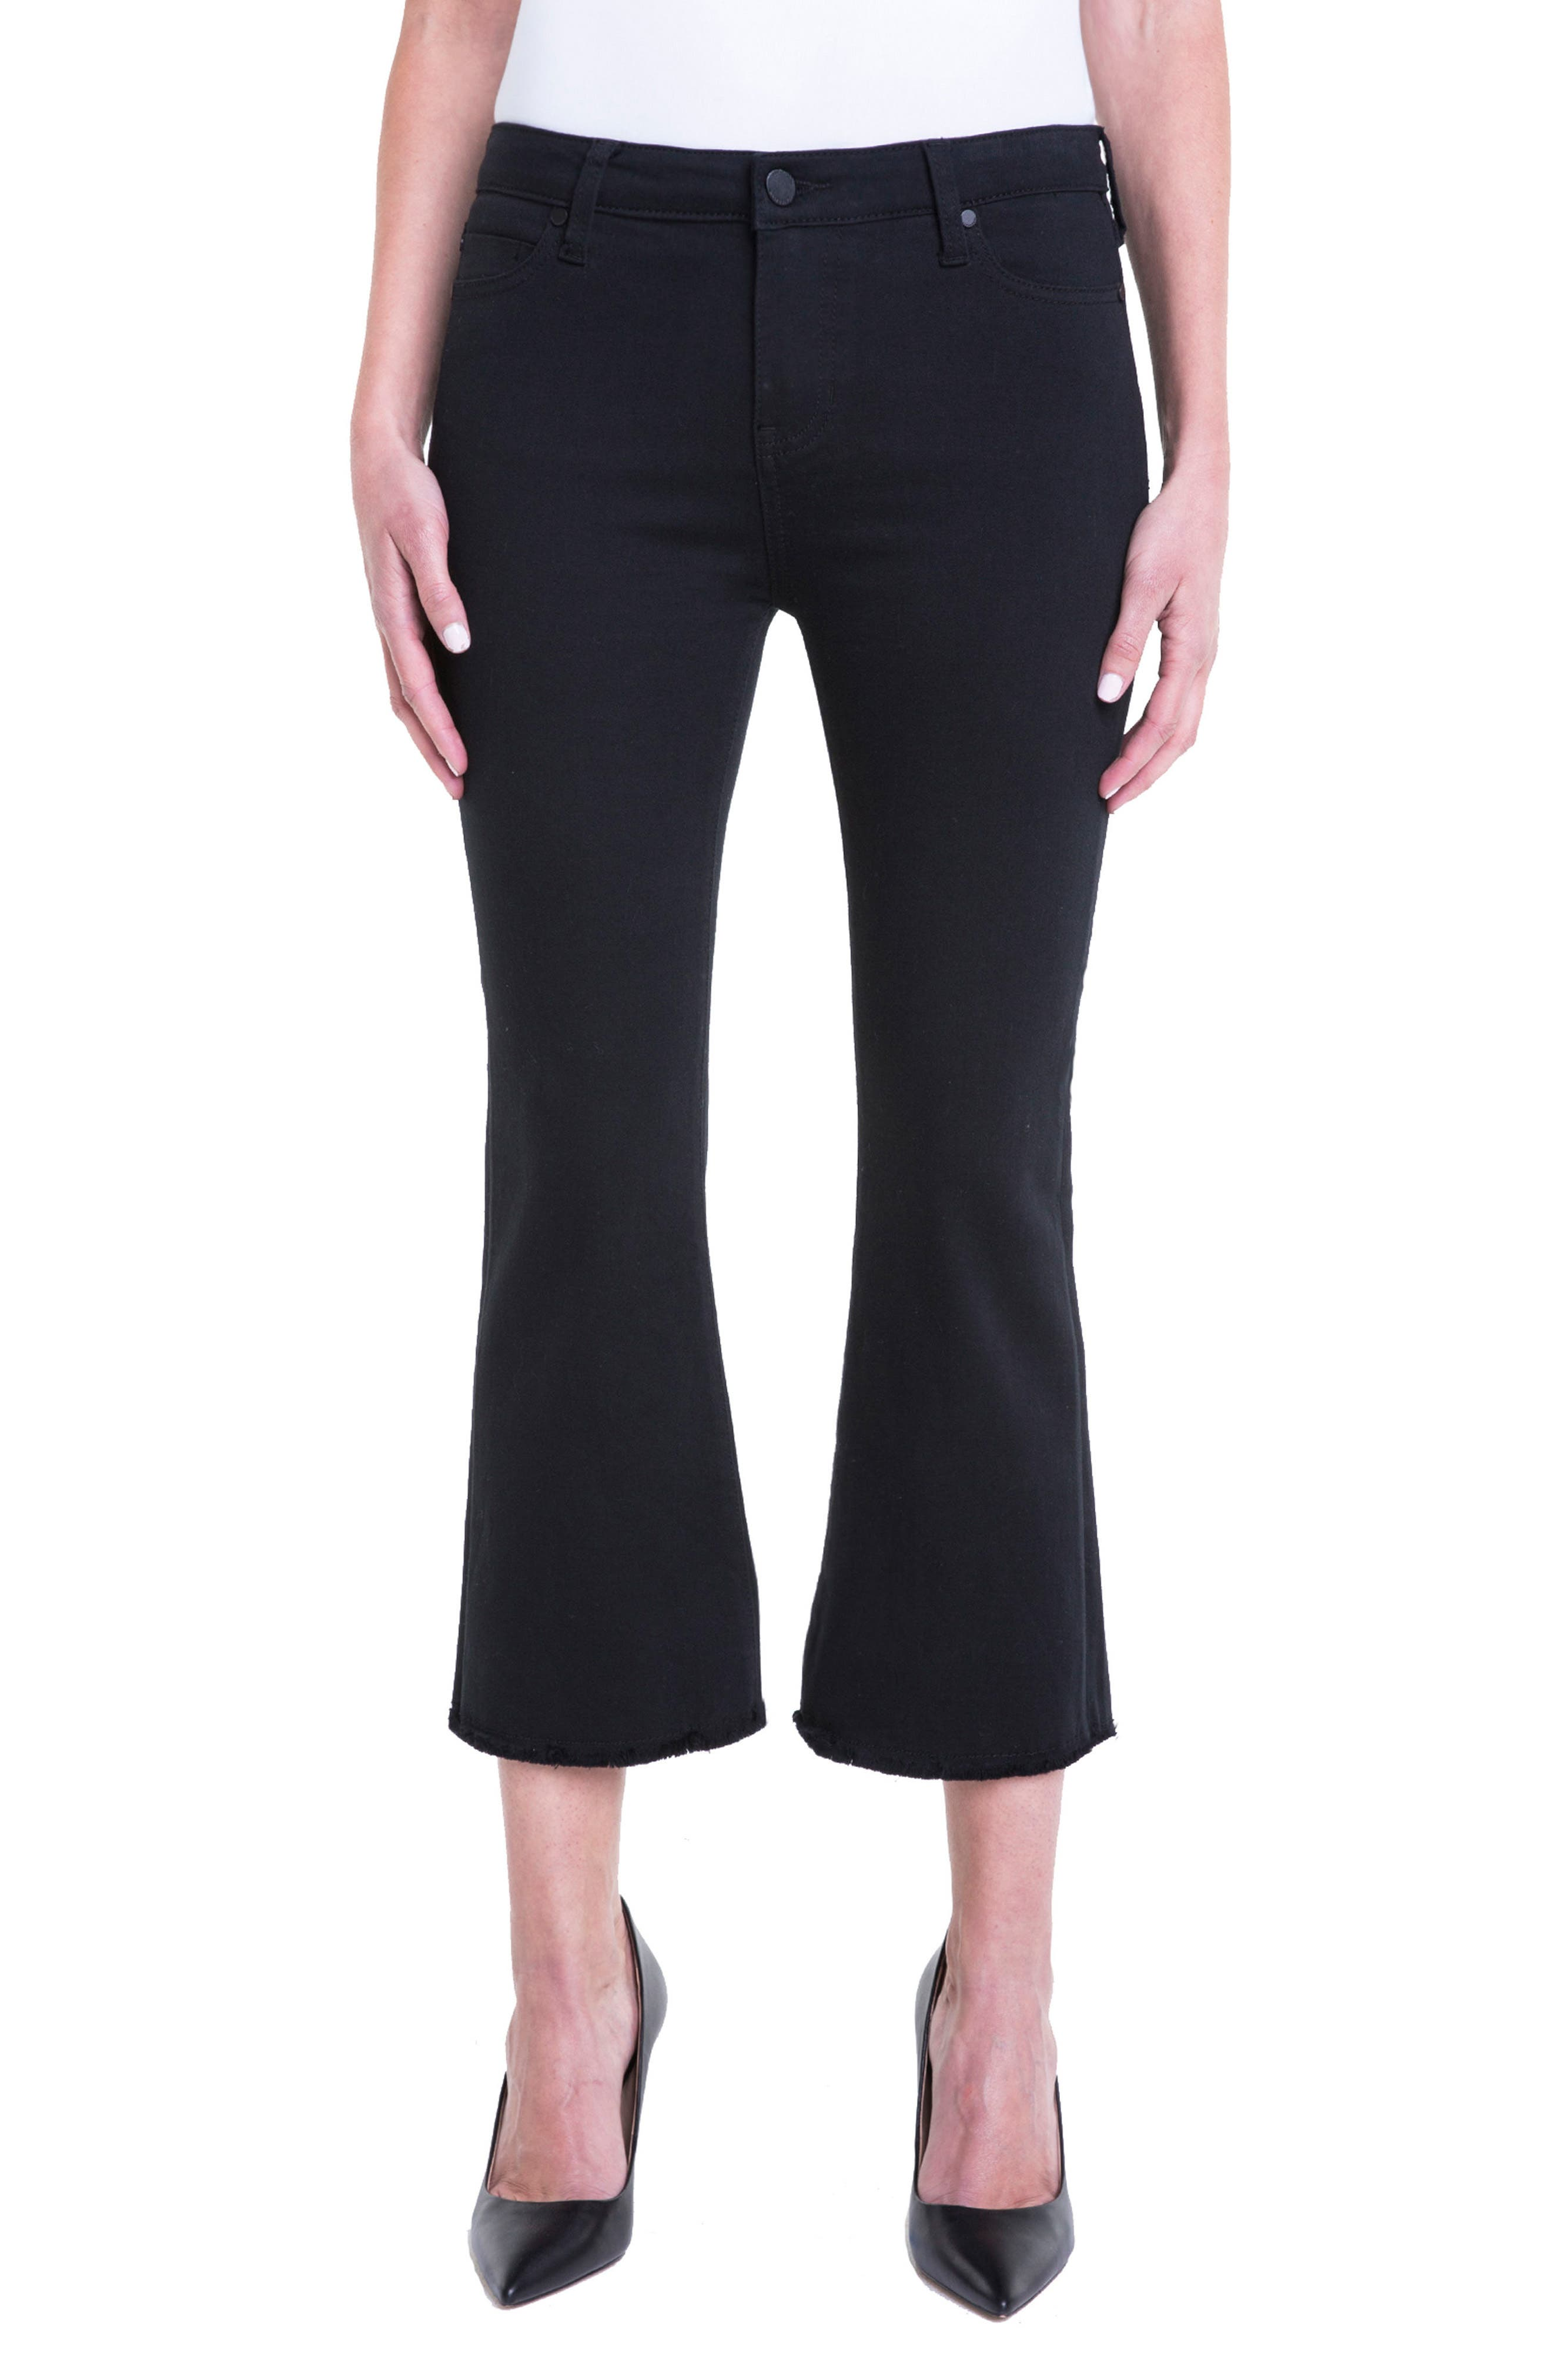 Liverpool Jeans Company Hannah Crop Flare Jeans